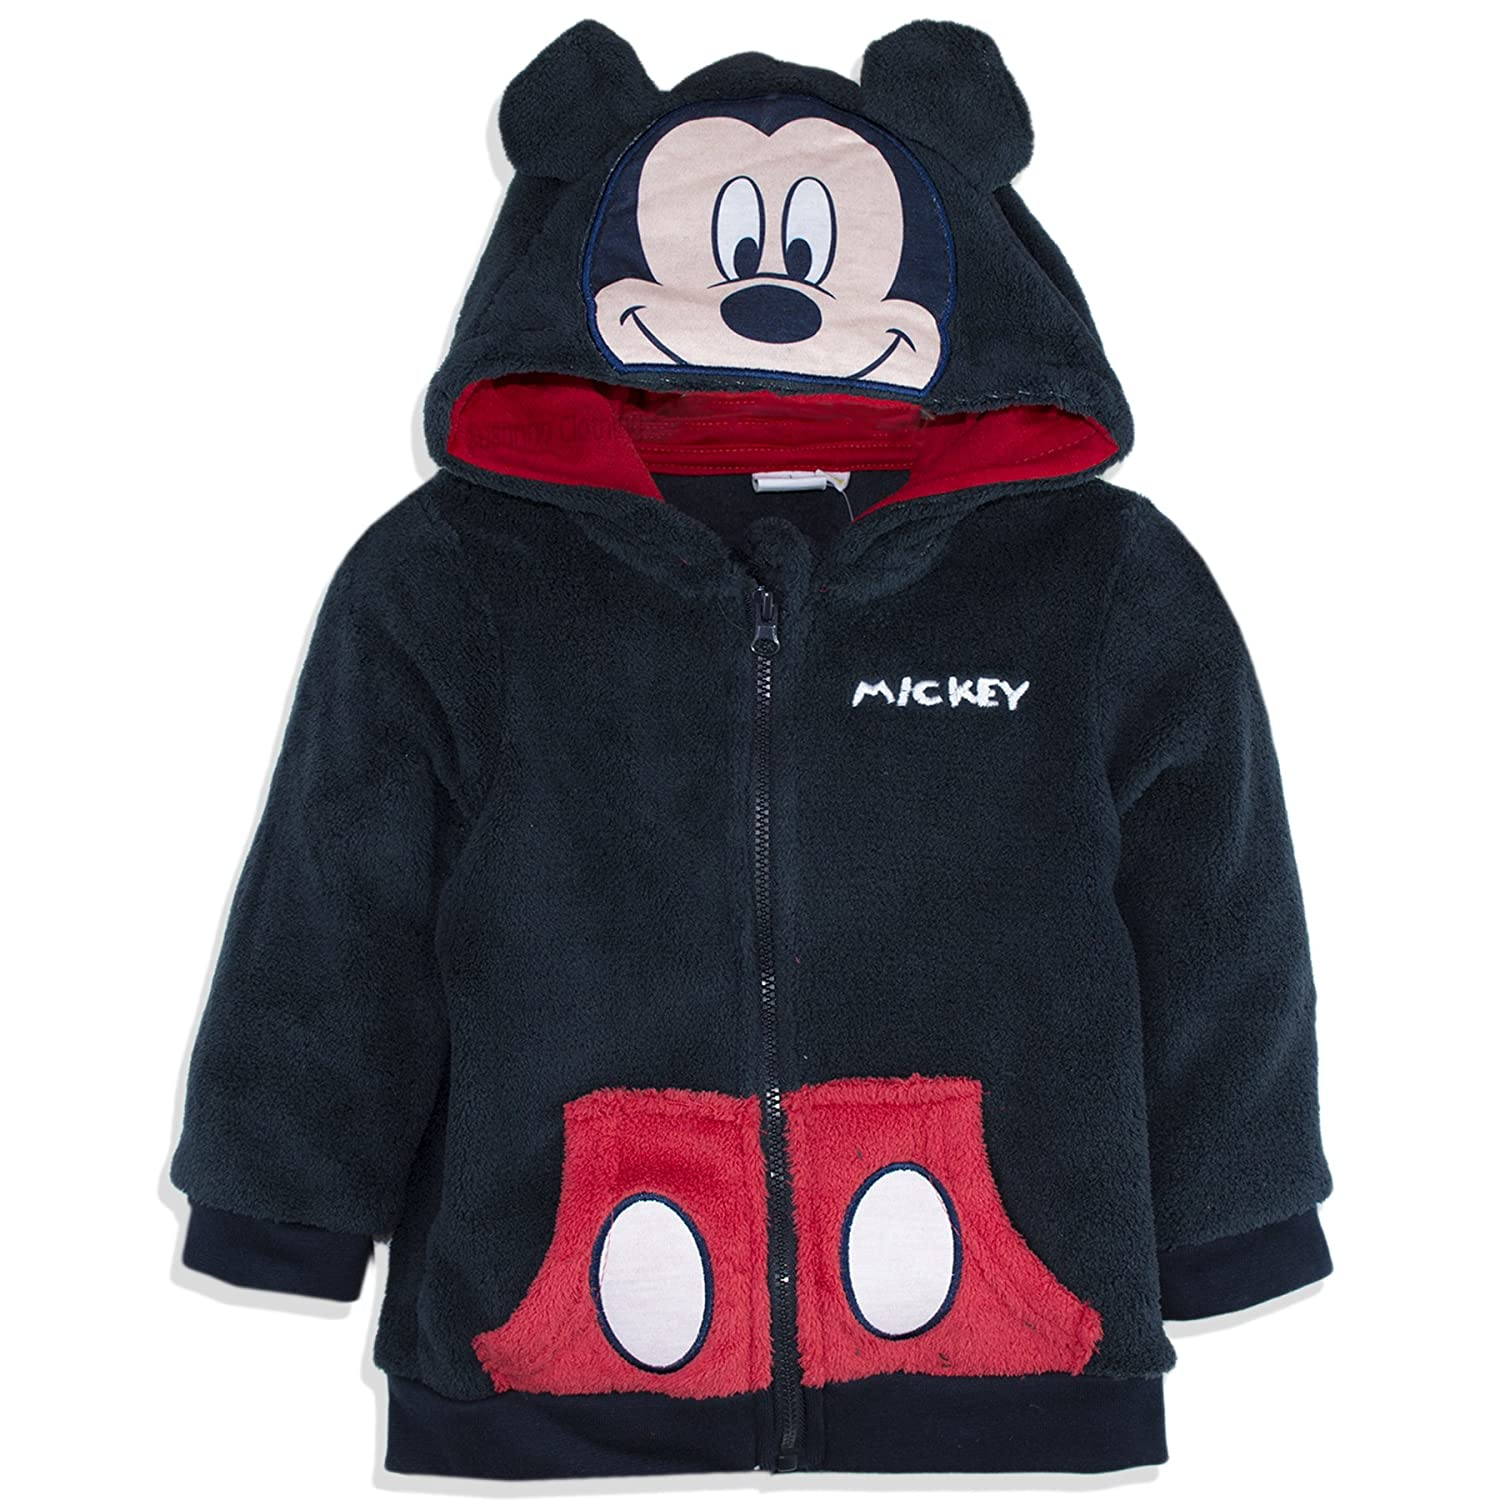 Disney Official Mickey Mouse Baby Boys Coral Fleece Hoodie Jumper Sweatshirt 9 Months - 3 Years - New 2017